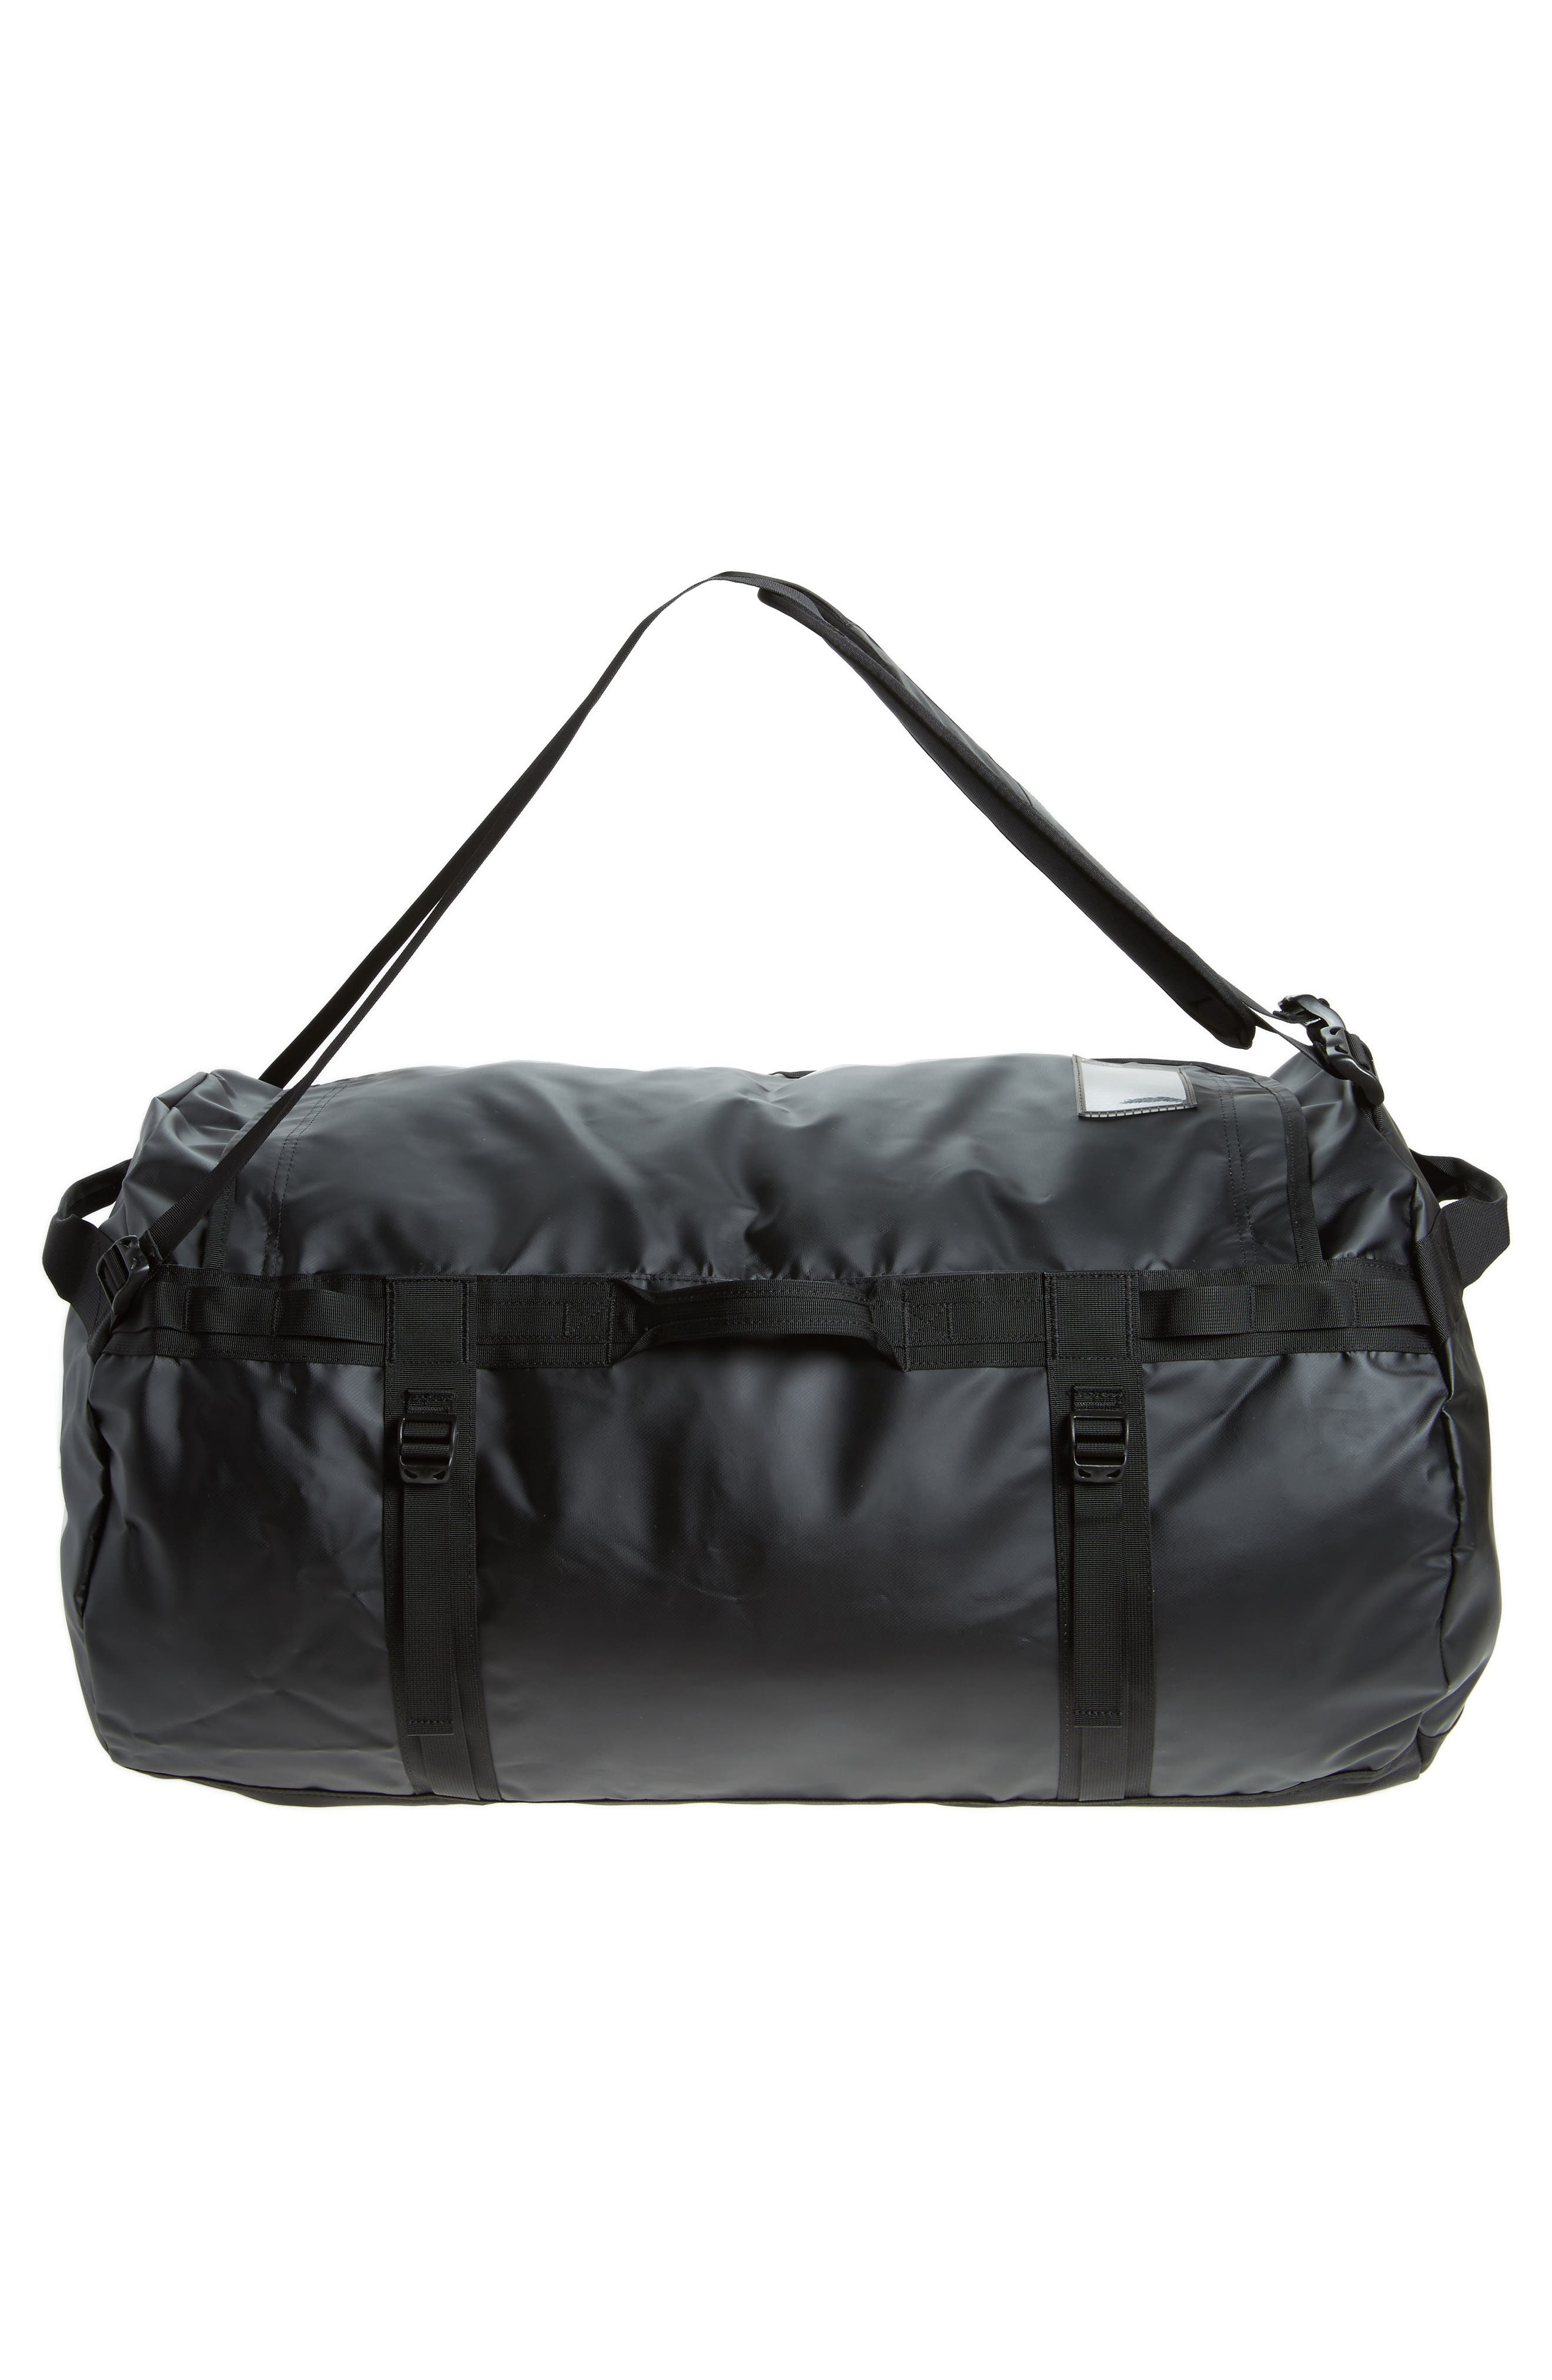 Base Camp XL Duffel Bag,                             Alternate thumbnail 3, color,                             Black